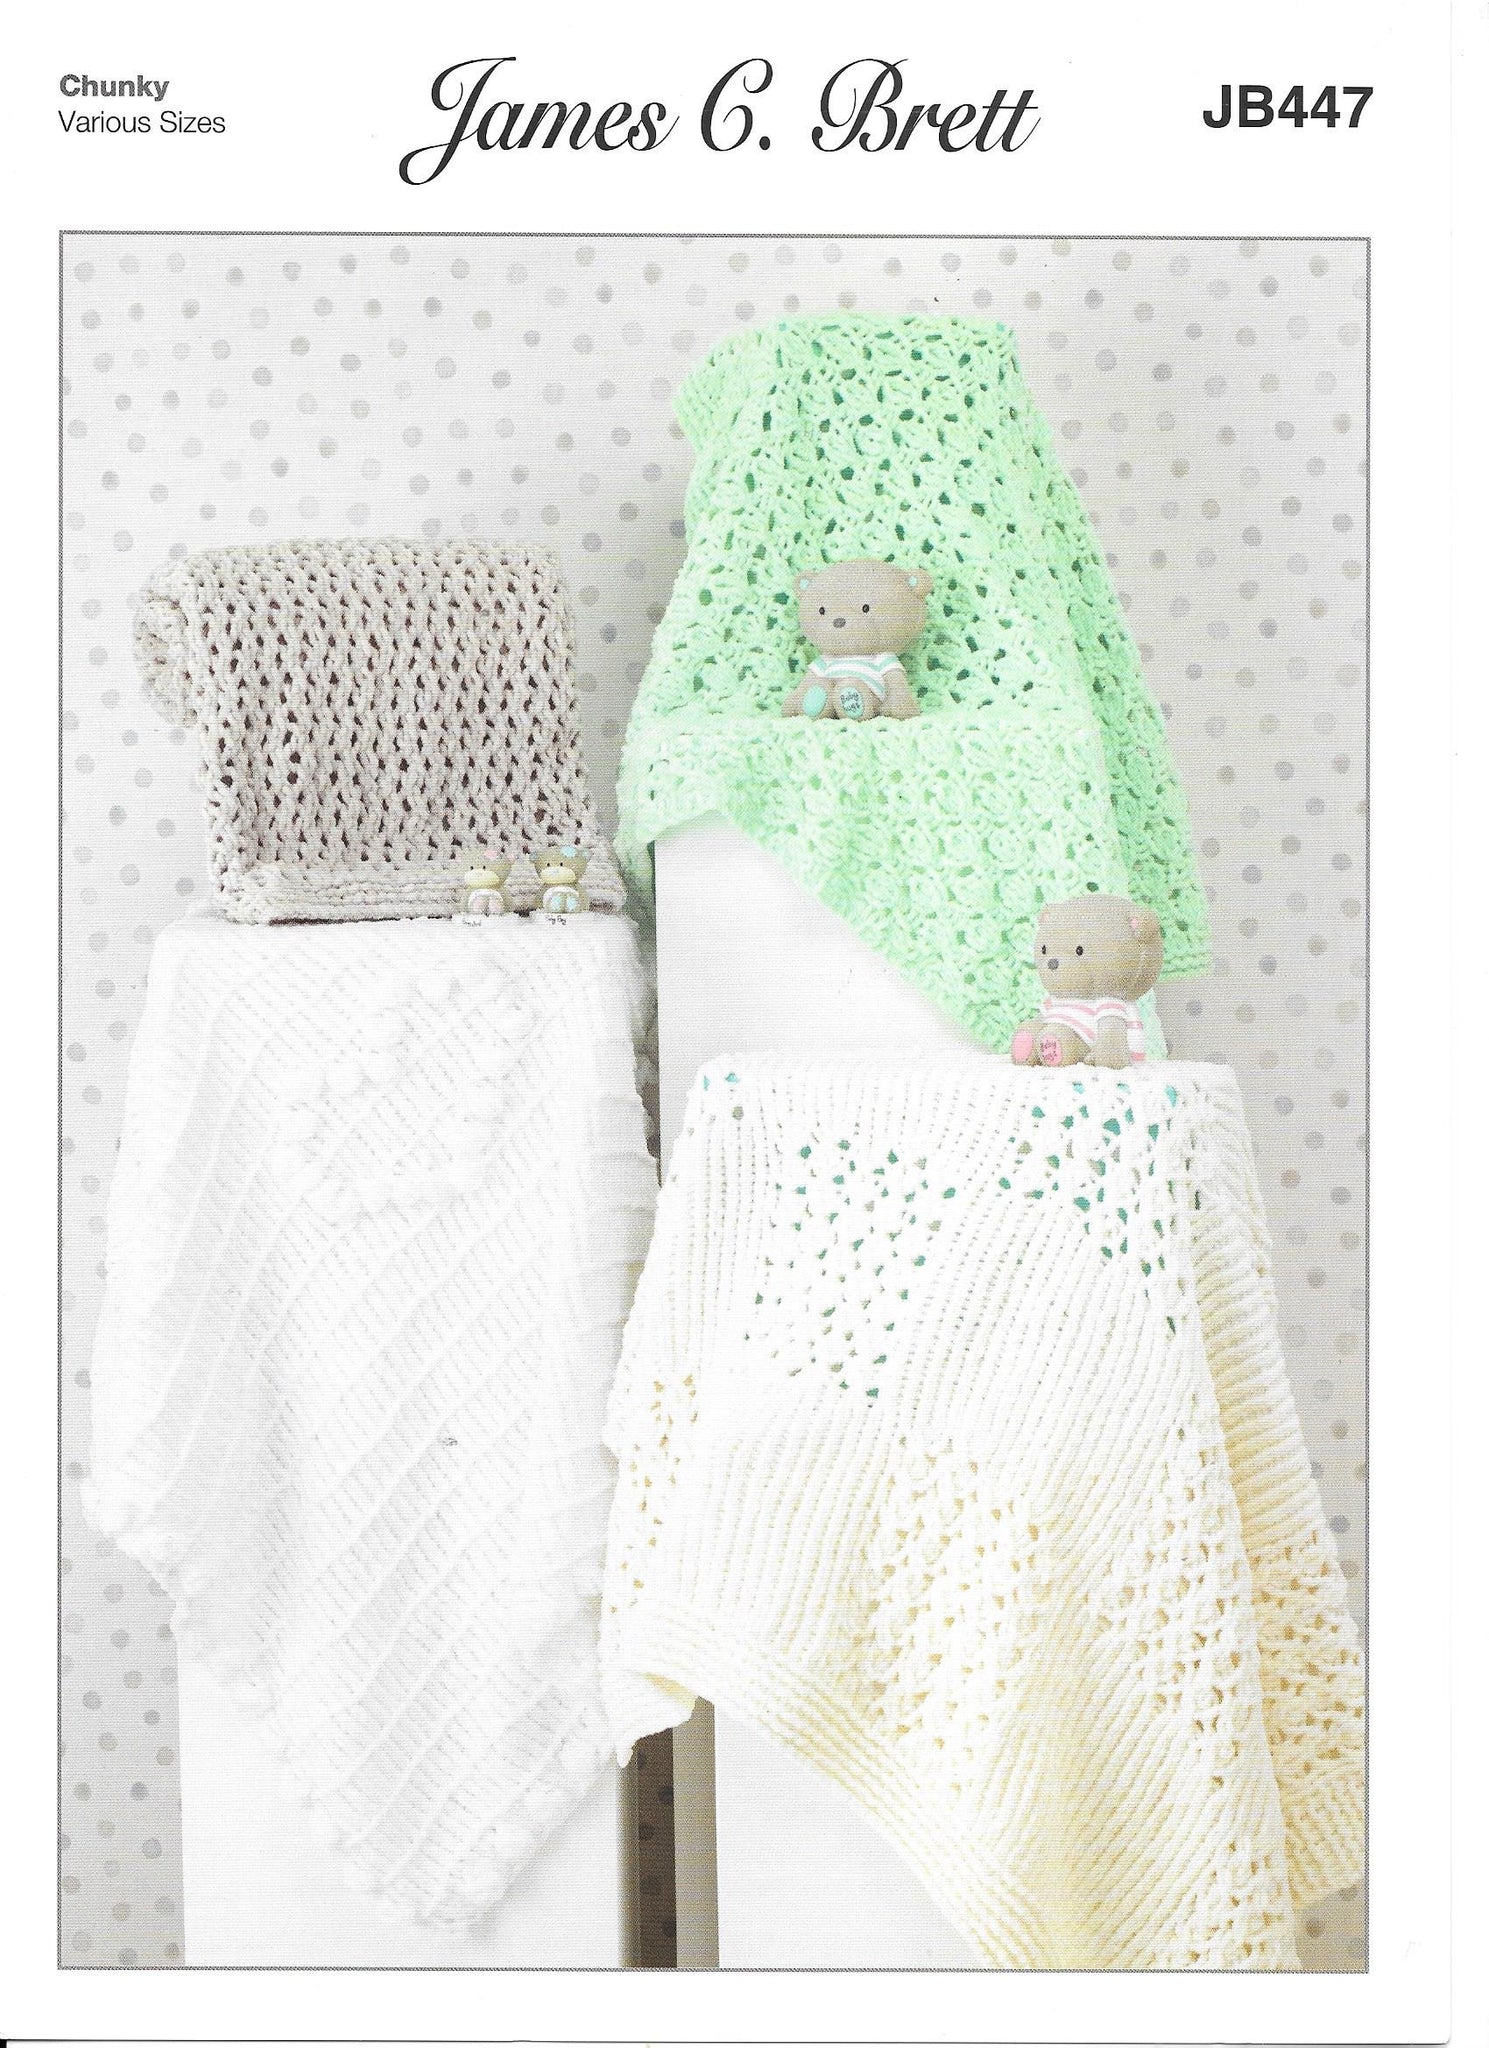 447 JB447 James C Brett Flutterby Pram and cot blankets knitting pattern